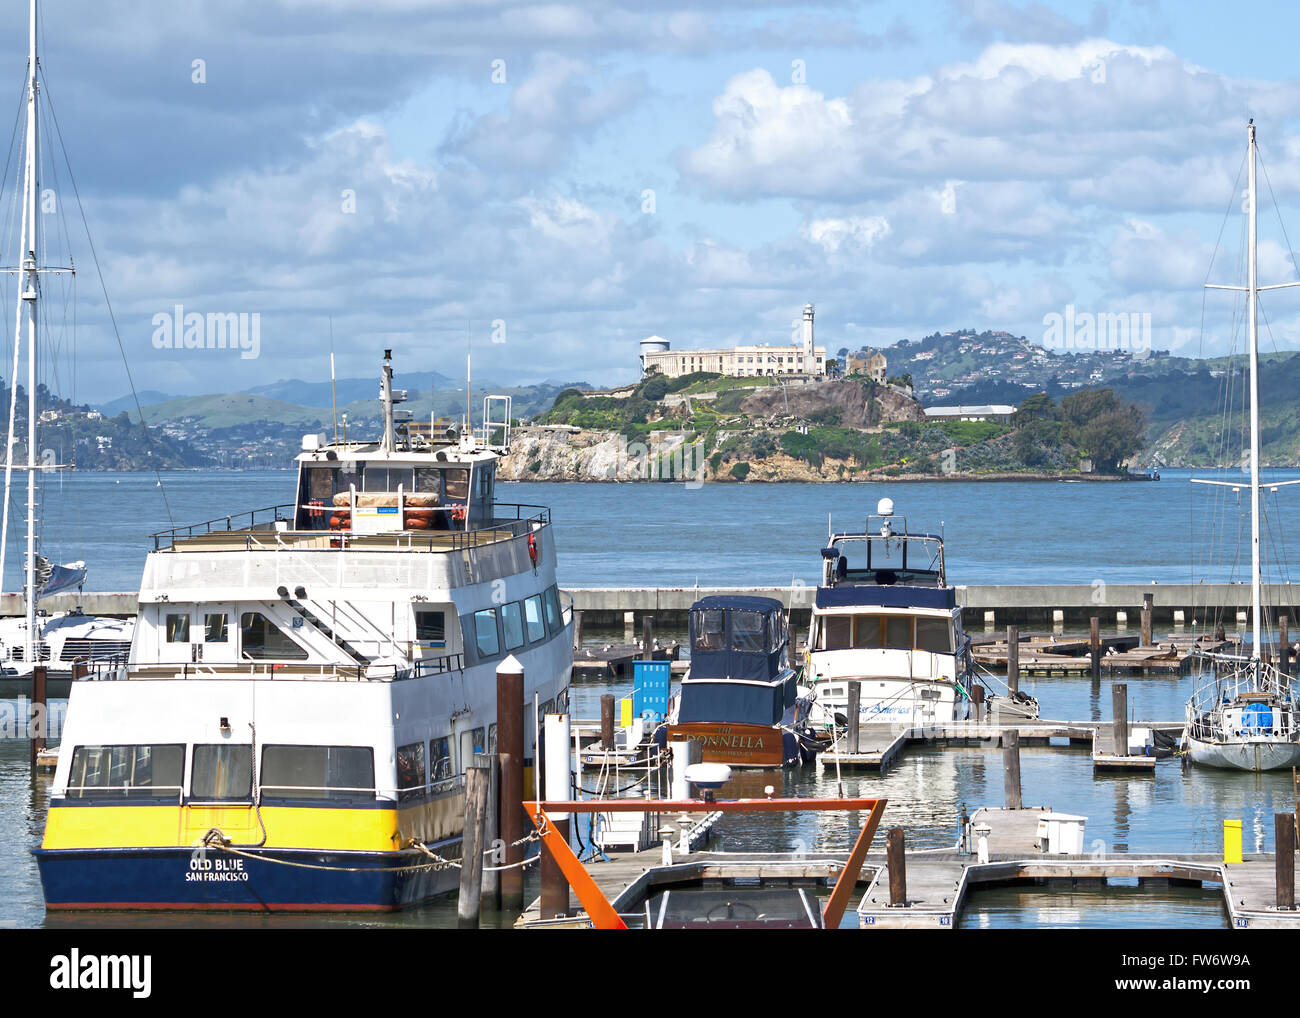 Alcatraz Island  with yacht marina in foreground in San Francisco Bay California USA - Stock Image